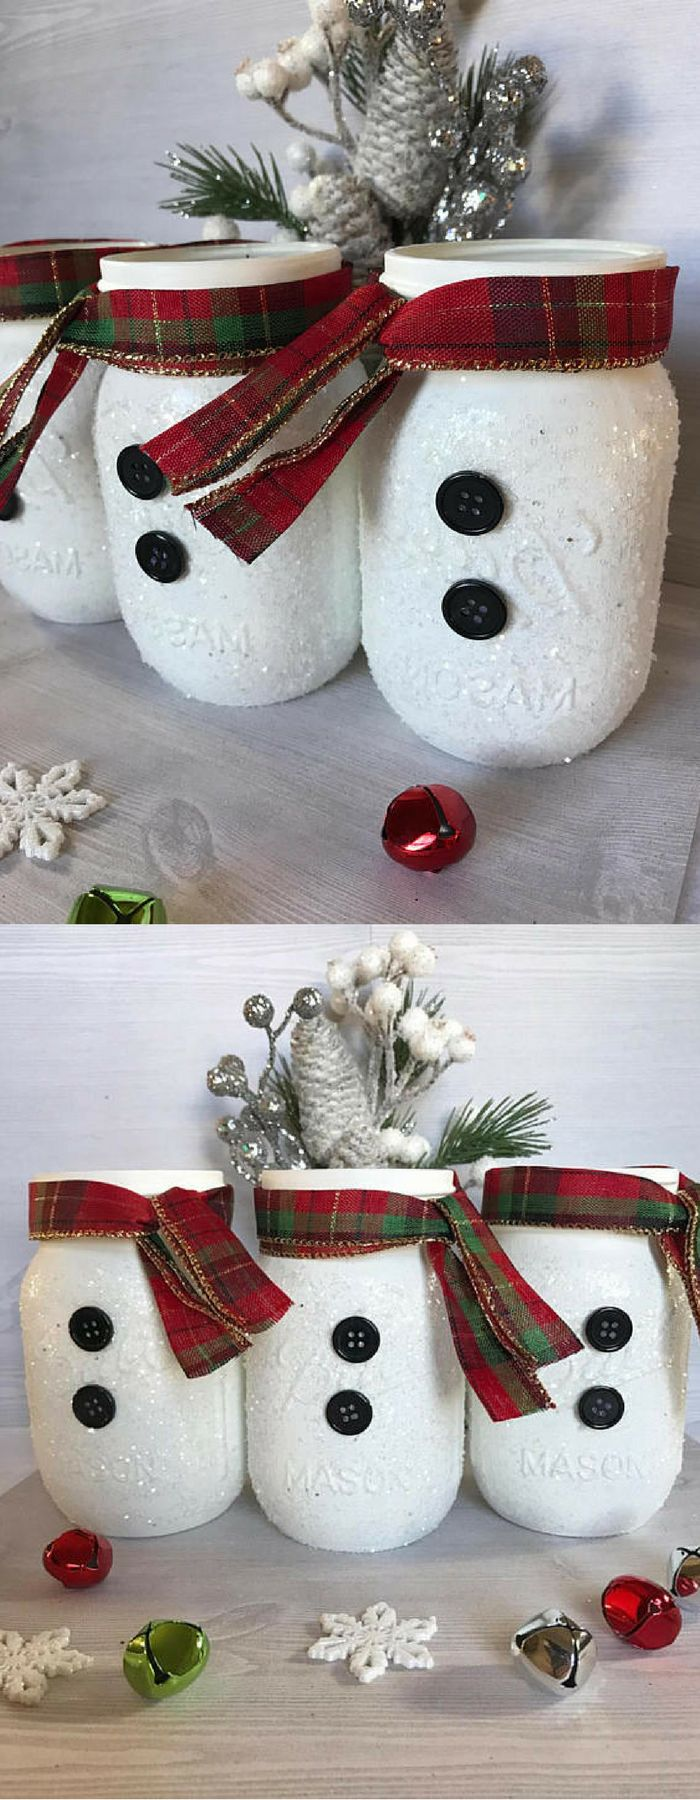 This adorable set of snowmen Mason jars makes a perfectly playful winter centerpiece. Add them to that special room for a festive look. Spice them up with florals or decorative branches. They also look great on their own. Snowman Decor, Snowman Mason Jars, Holiday Home Decor, Frosty Decor, Christmas Home Decor, Christmas Mason Jars, Rustic Christmas Decor #ad #affiliate #DIYHomeDecorMasonJars